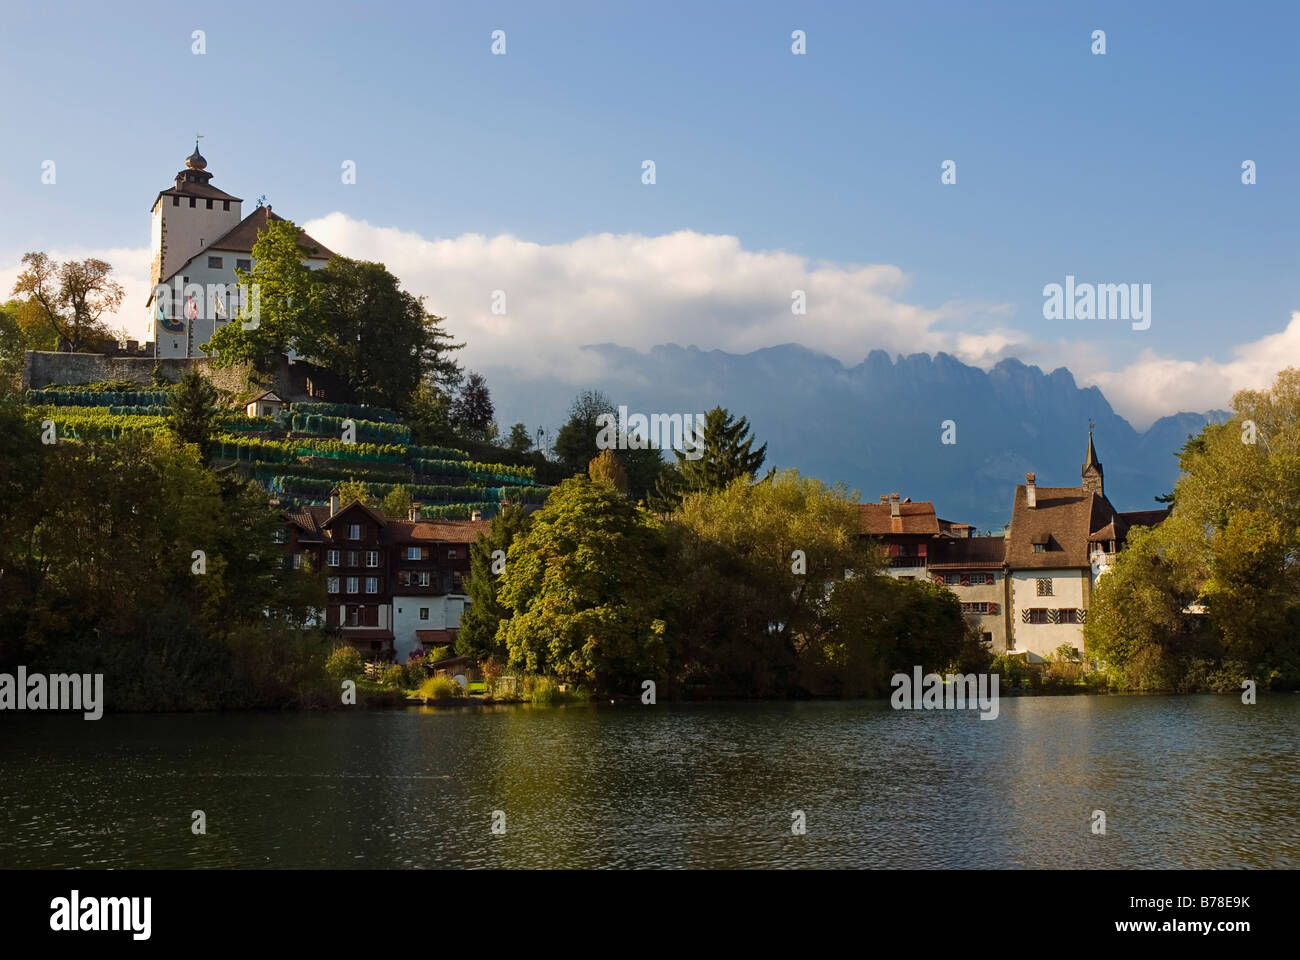 Werdenberg Castle and houses, in the back Alpstein Range, Grab municipality, Canton of St. Gallen, Switzerland, - Stock Image